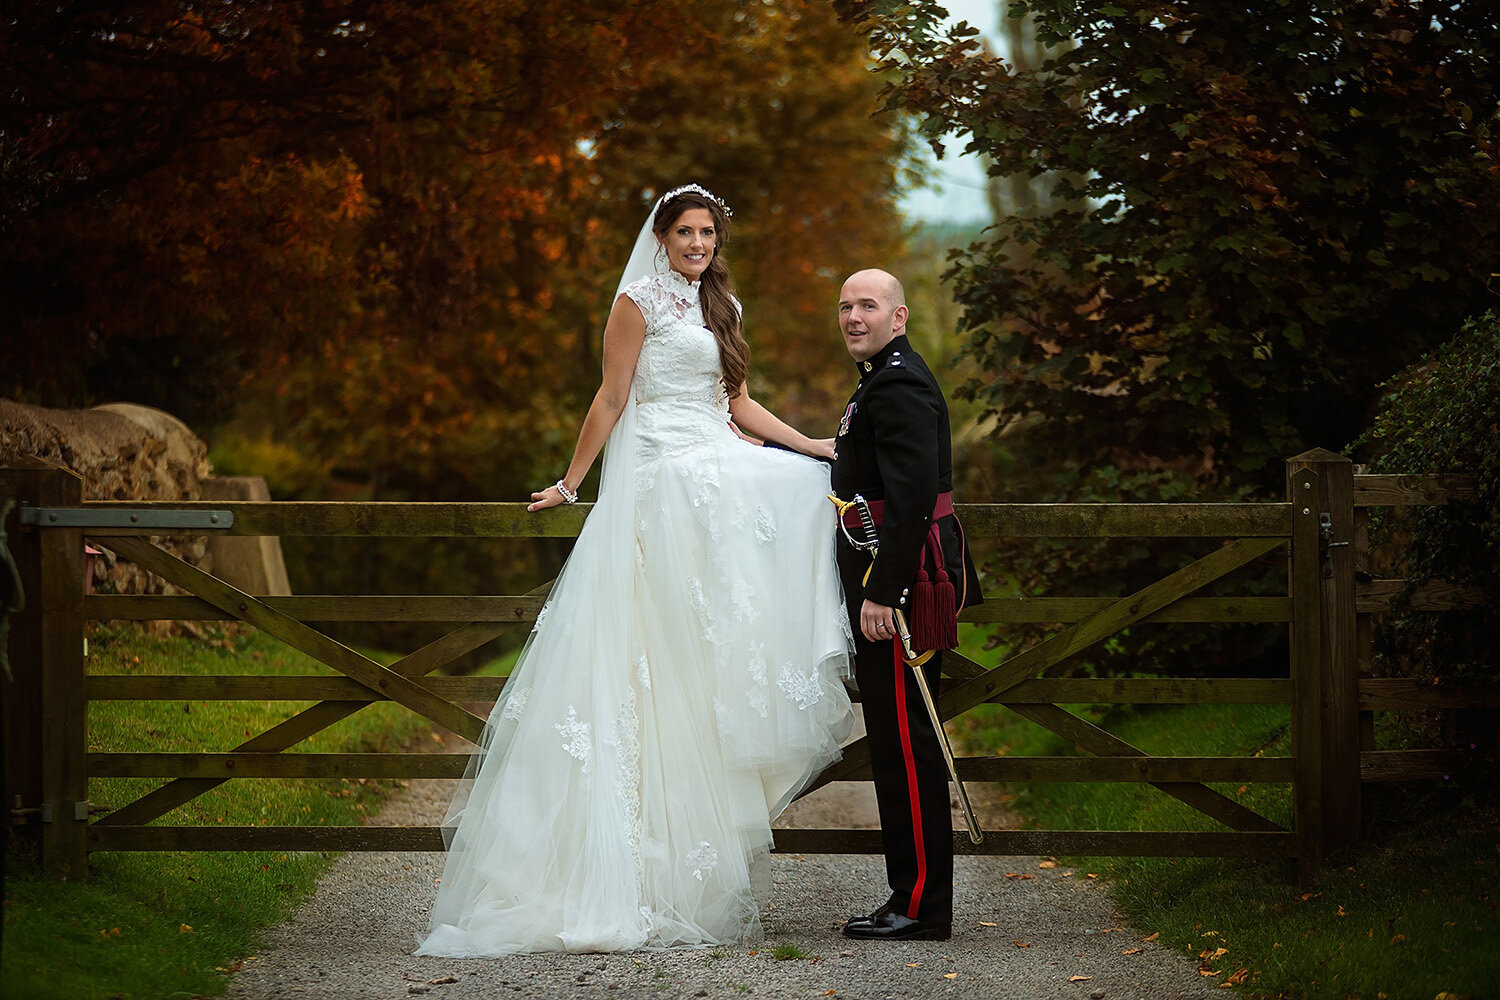 wedding-photographer-dodford-manor-portrait.jpg